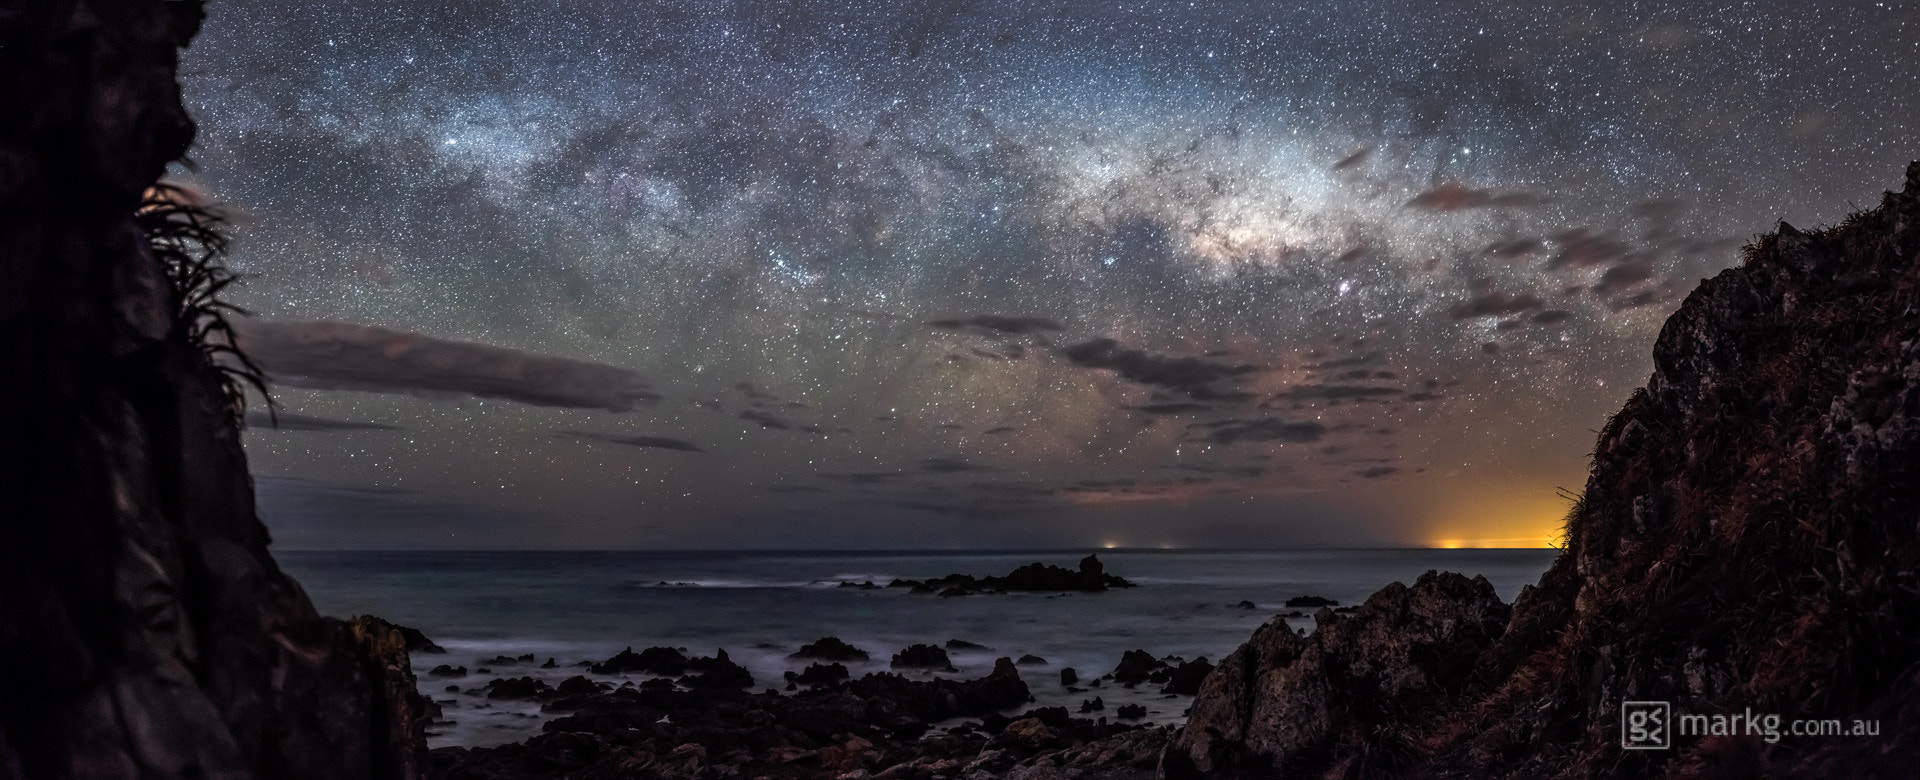 Photograph A Night at Devil's Gate by Mark Gee on 500px